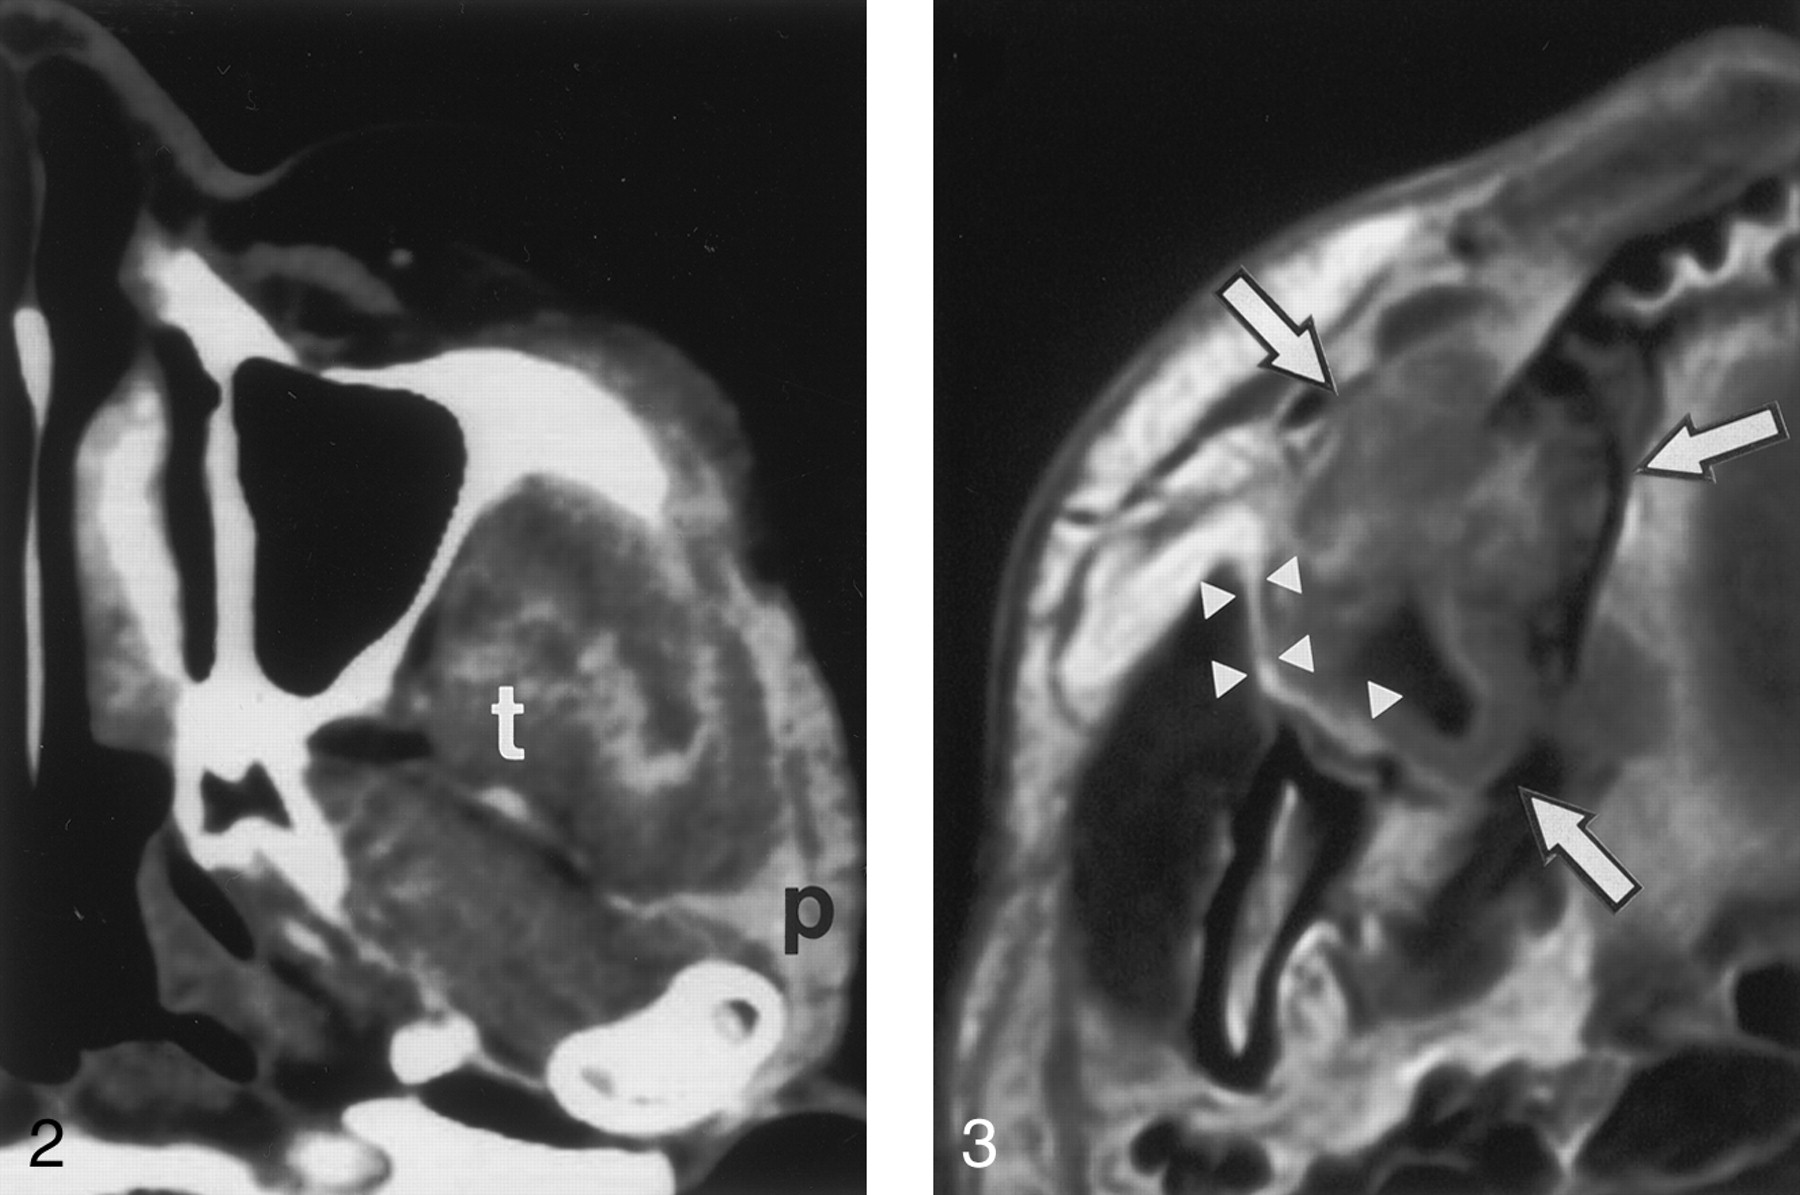 Deep Extension from Carcinoma Arising from the Gingiva: CT and MR